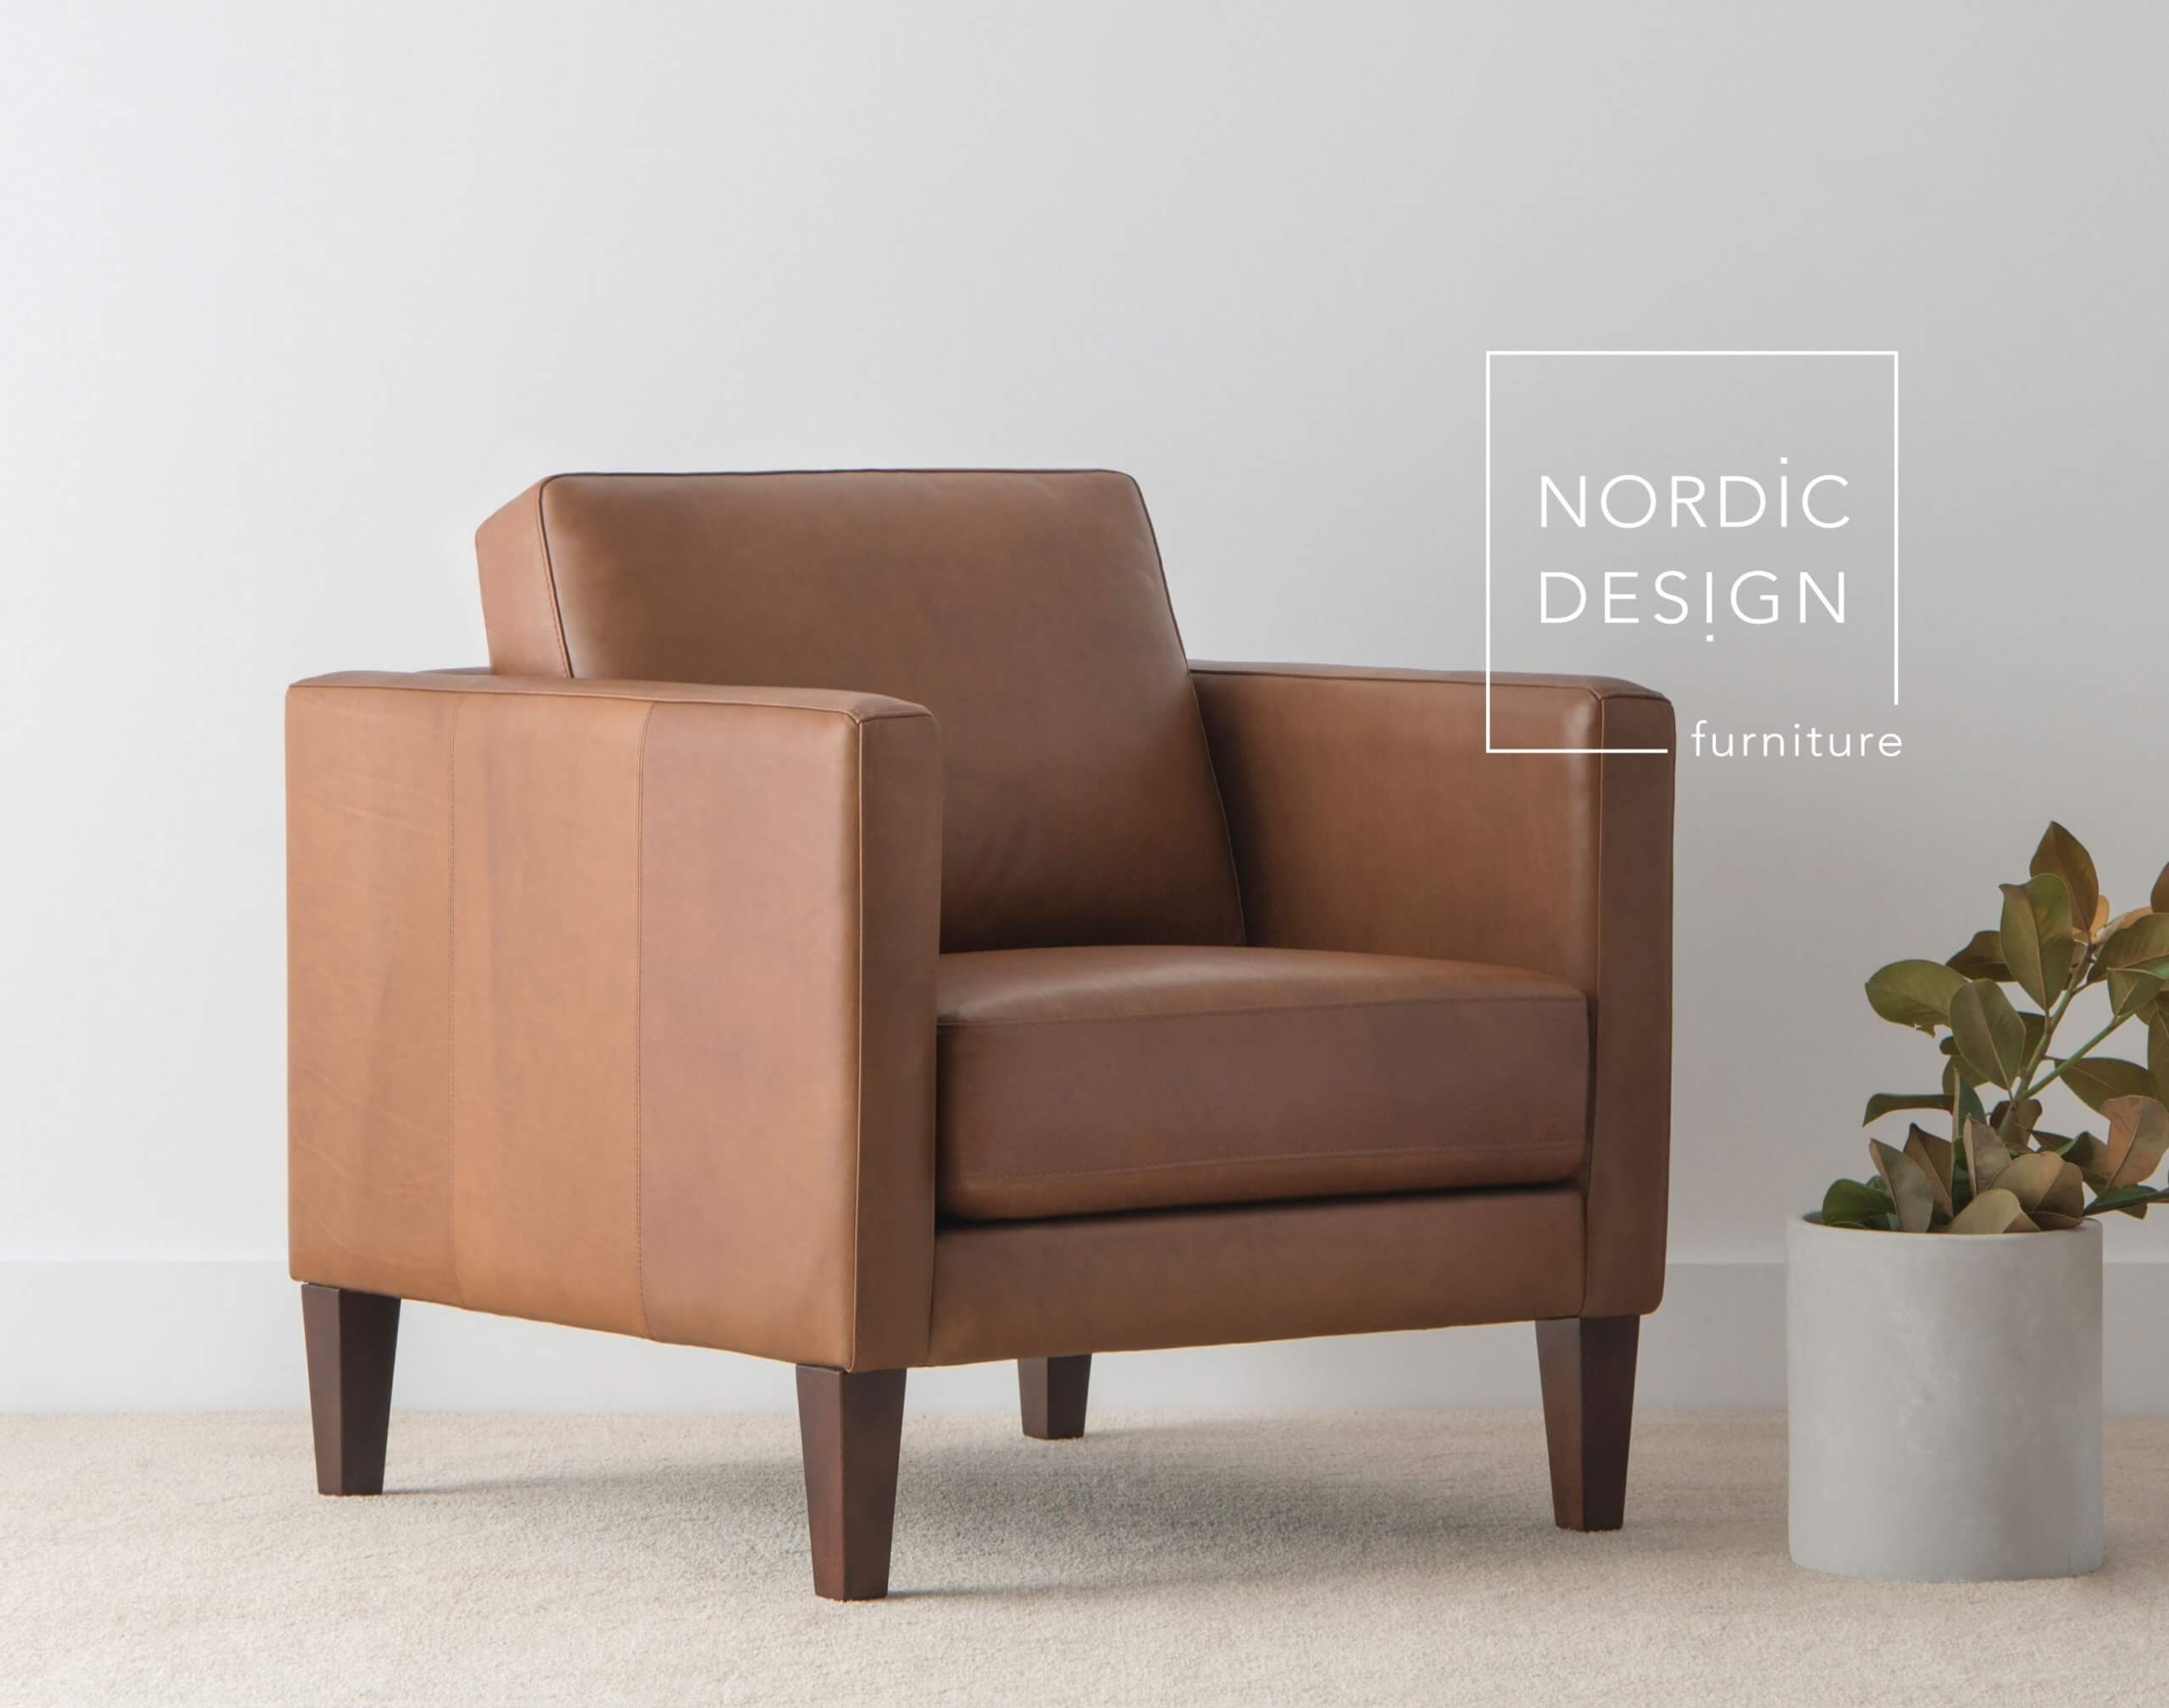 leather arm chair with thin arm rests and low back cushion with timber legs